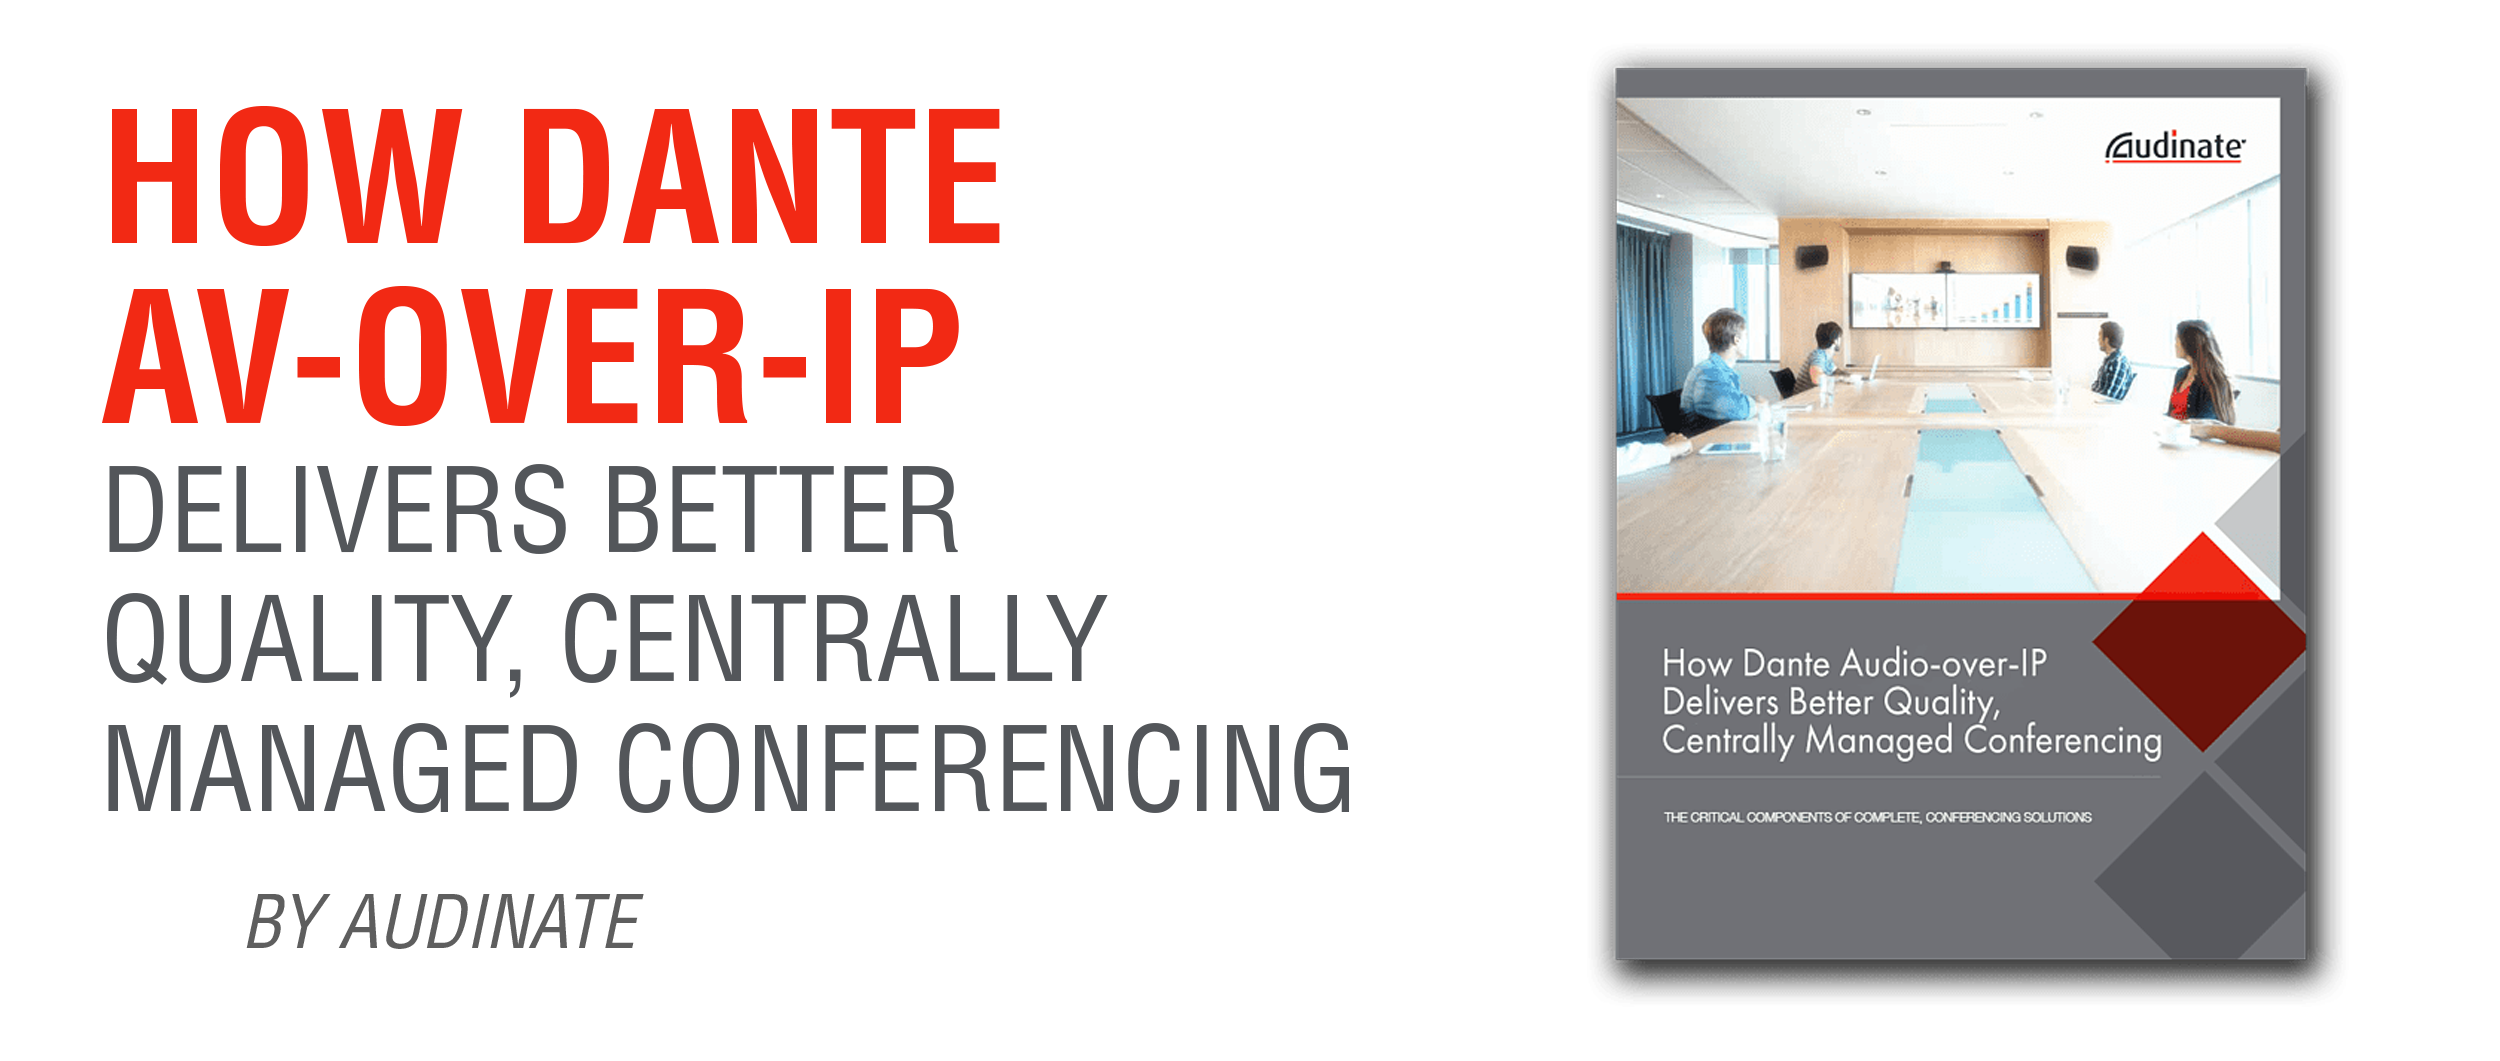 How Dante AV-over-IP Delivers Better Quality, Centrally Managed Conferencing